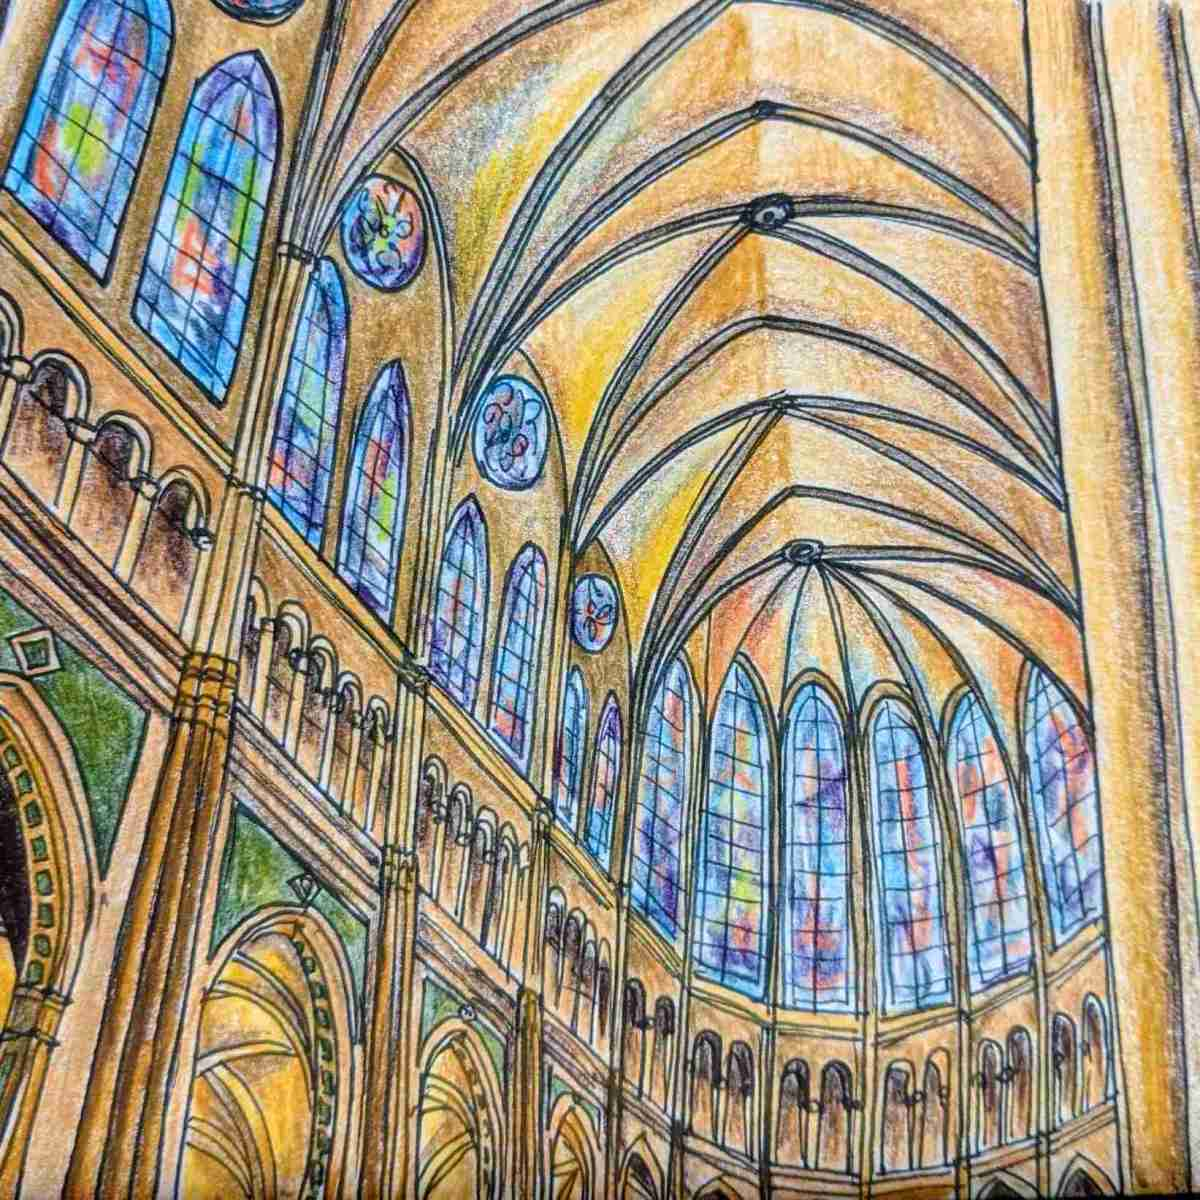 Drawing of Chartres cathedral ceiling ribbed vaults Gothic design